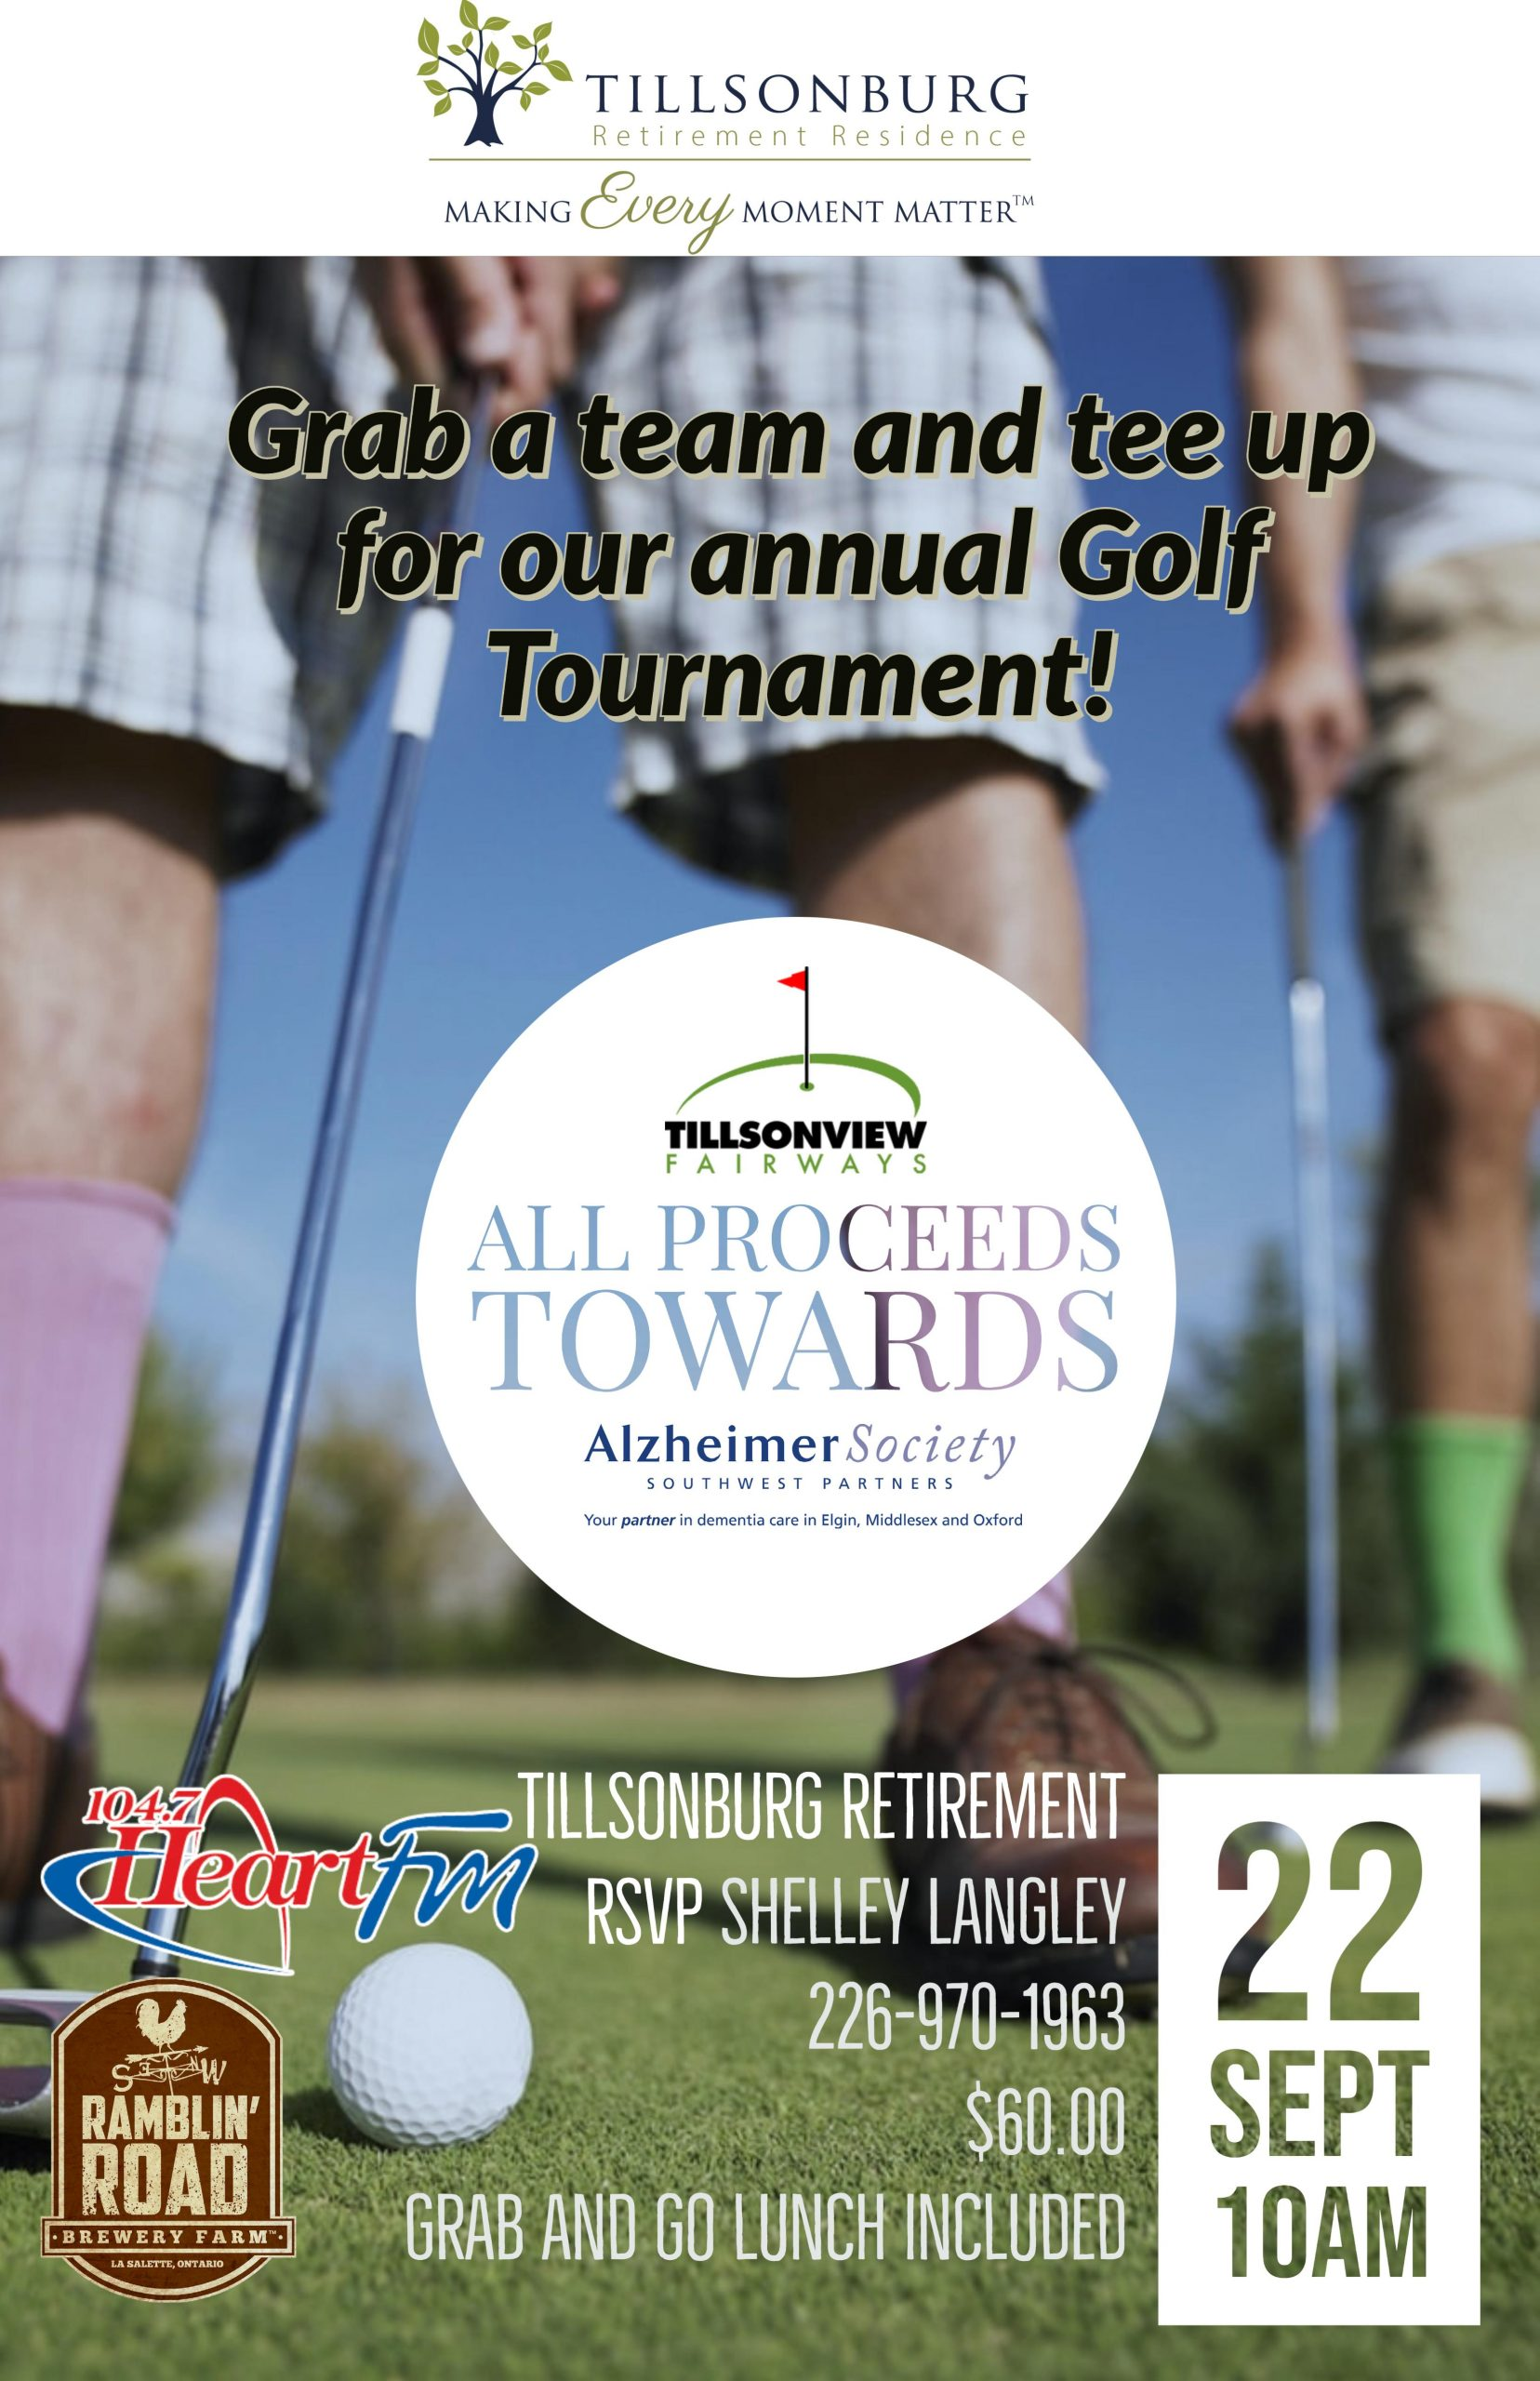 Charity Golf Tournament for Alzheimer's South West